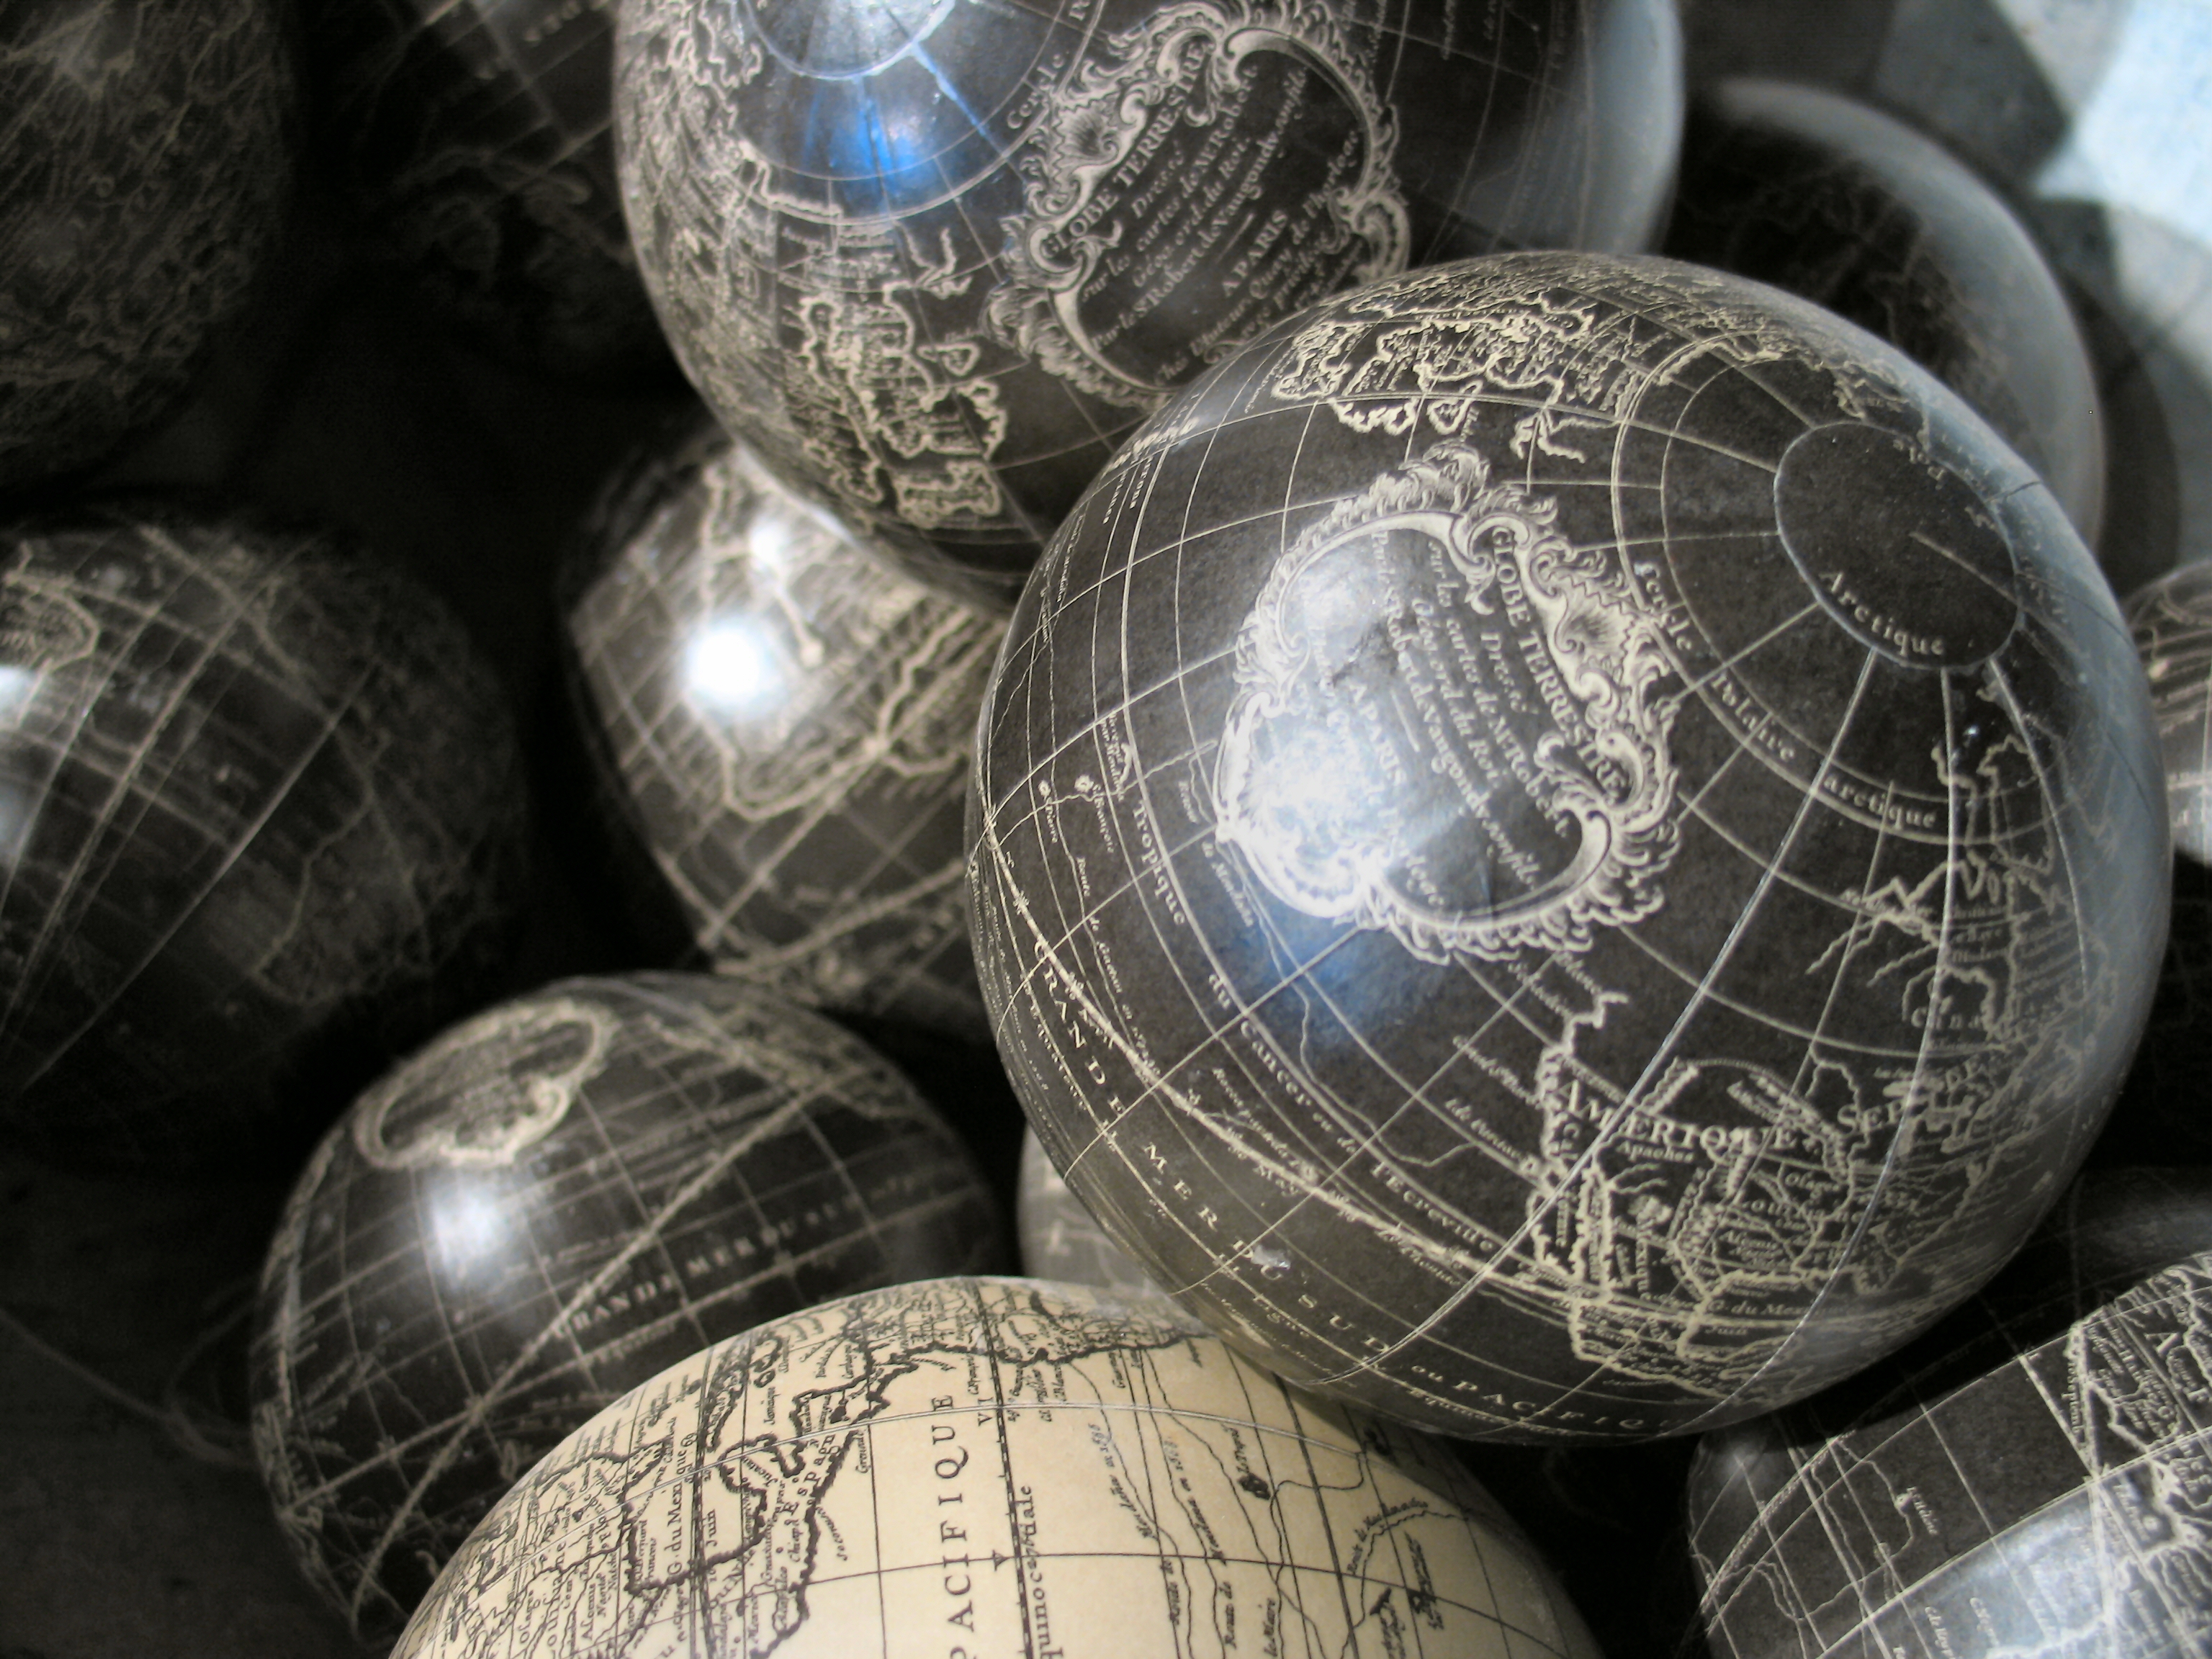 photo of a pile of antique globes